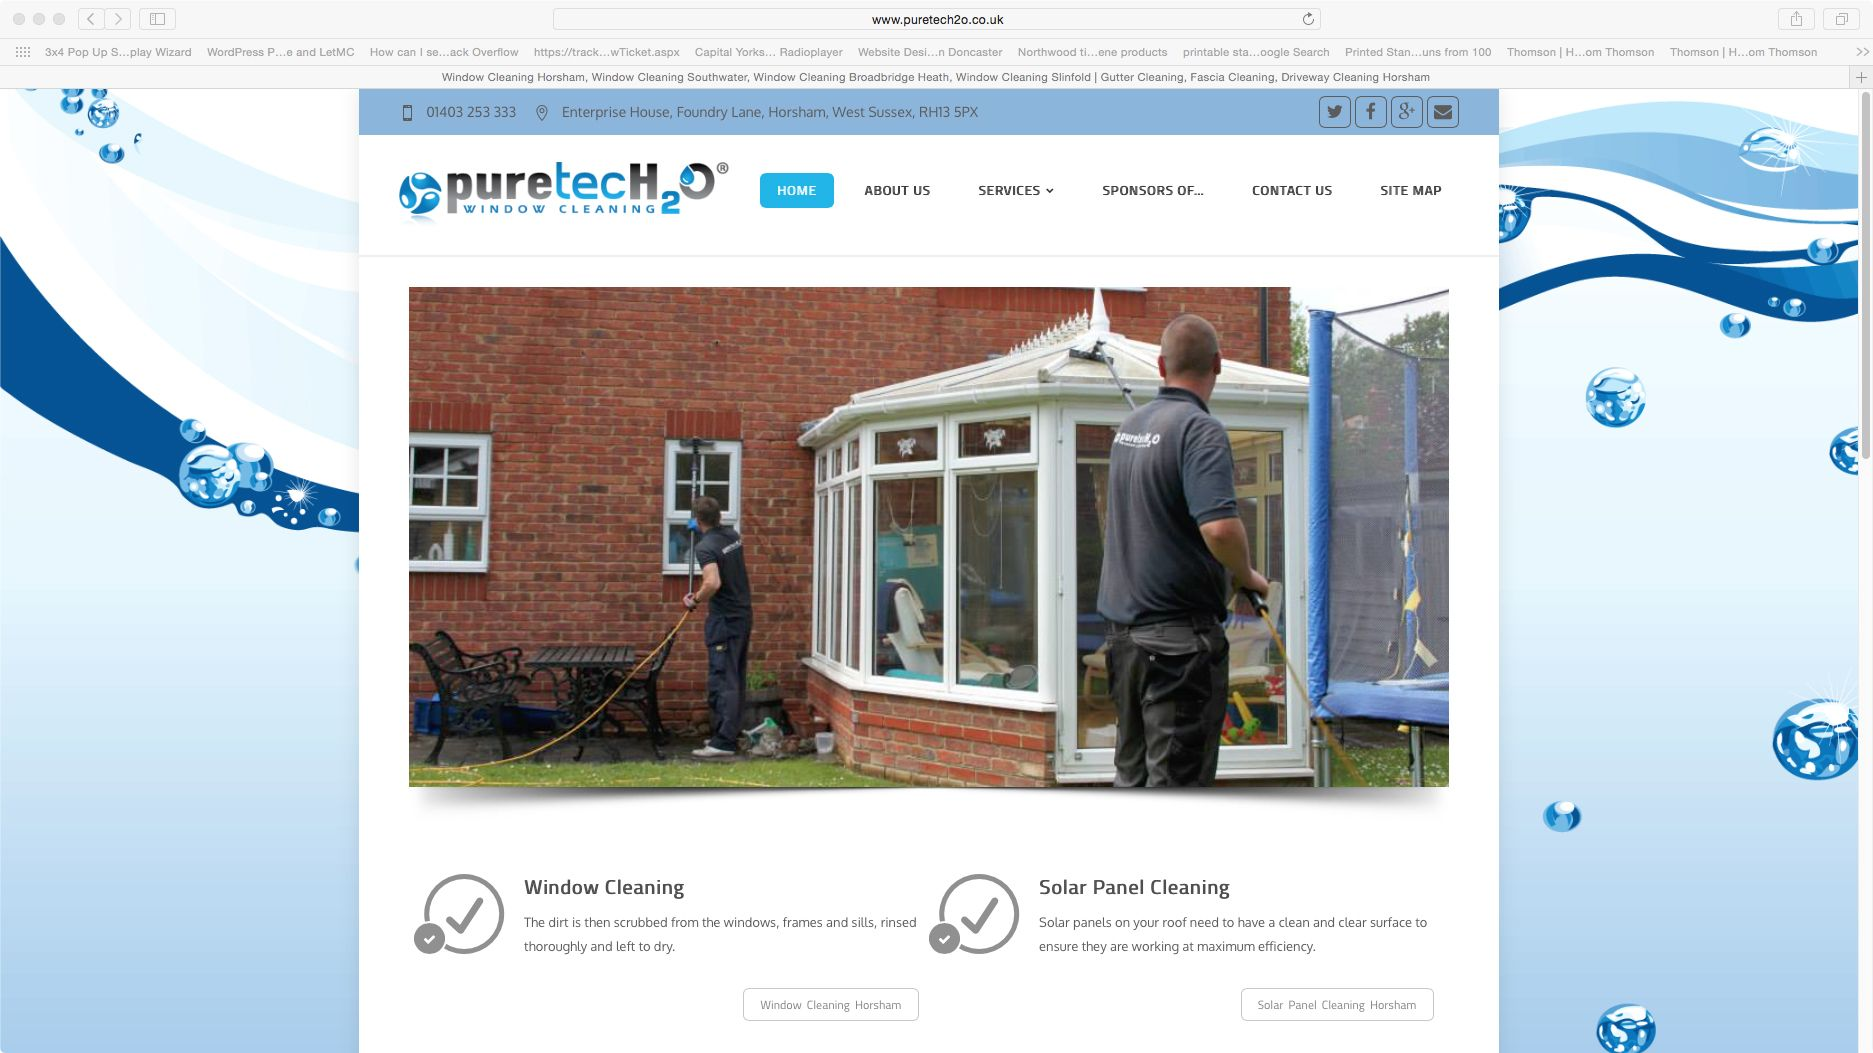 Pin by 4C Creatives on Website Design | Pinterest | Ecommerce ... Wizard House Design Html on software wizard, bootstrap wizard, audio wizard, microsoft office wizard, sql wizard,